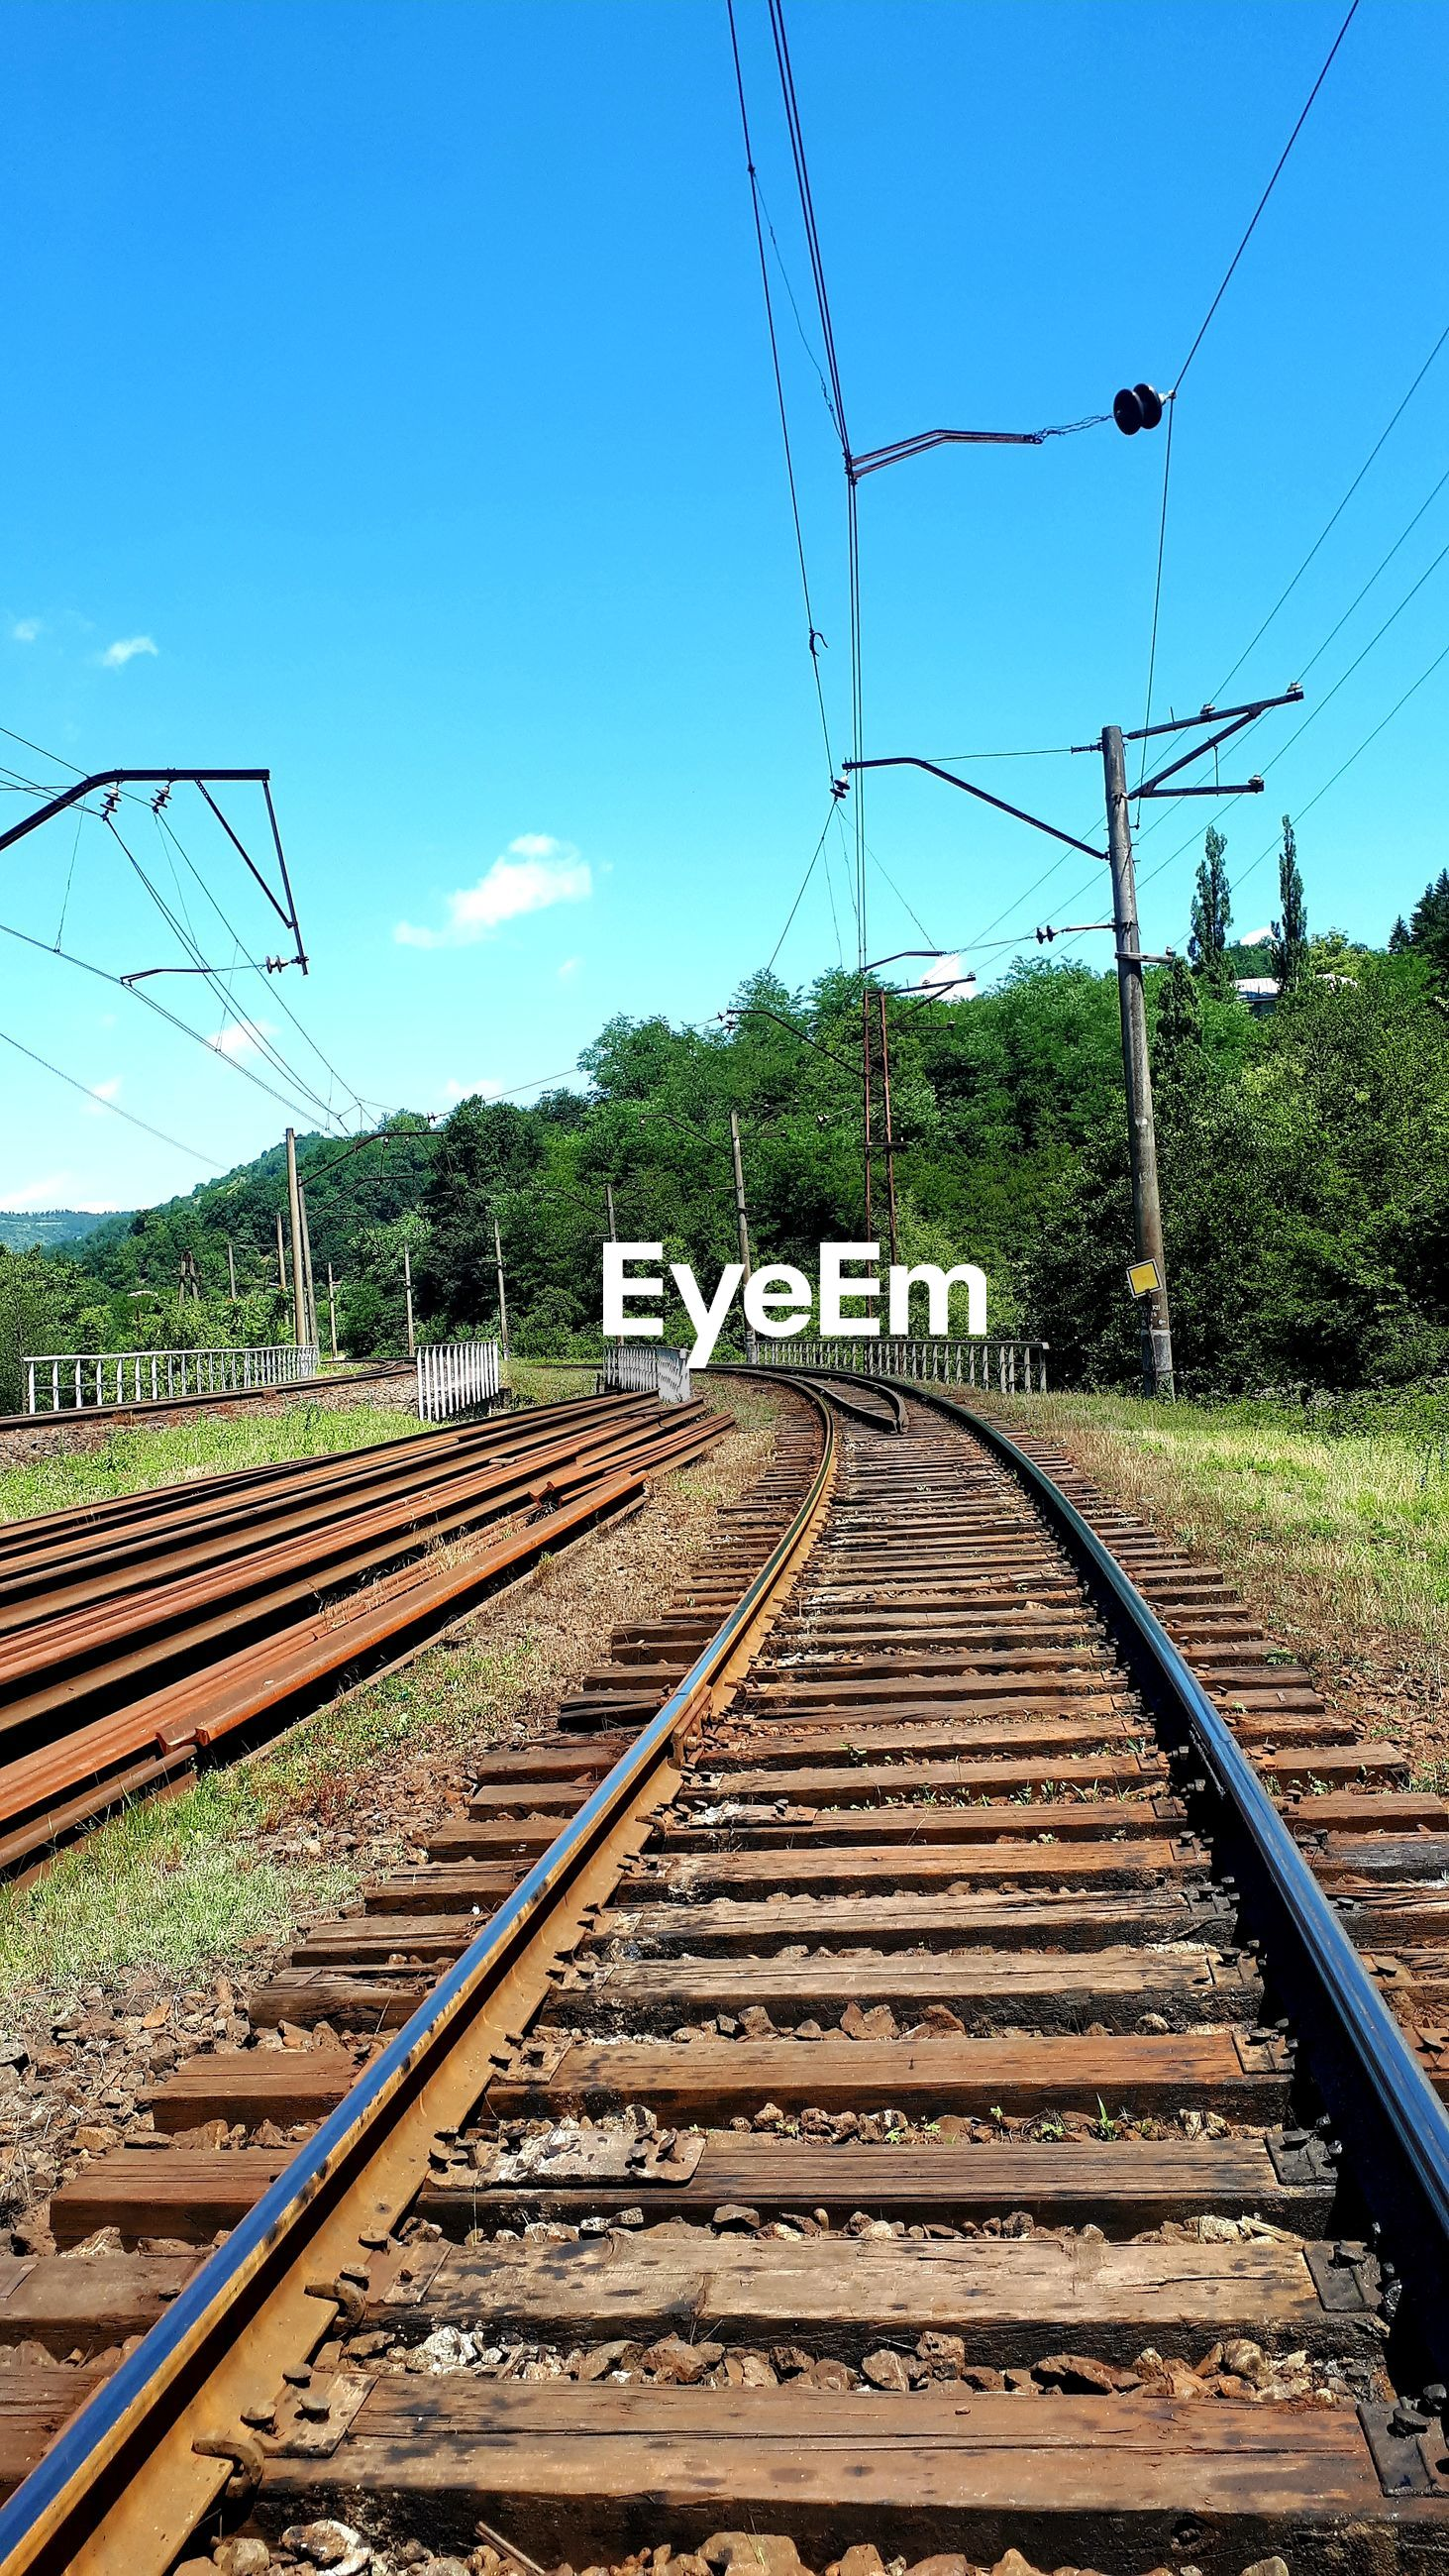 Diminishing perspective of railroad tracks against blue sky